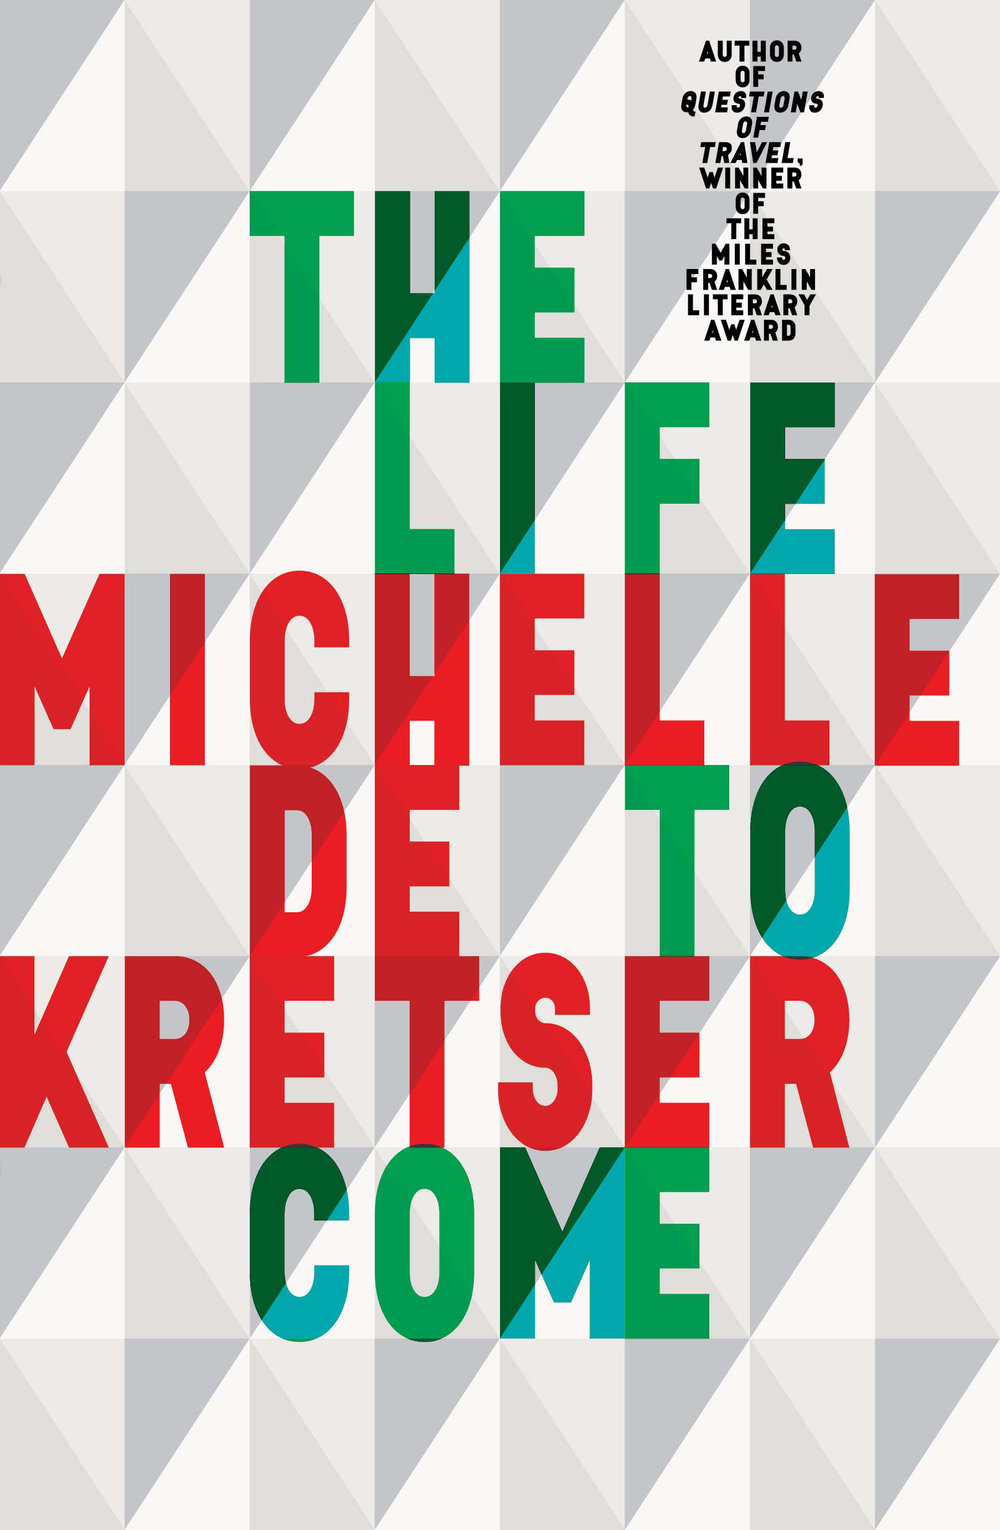 THE LIFE TO COME – MICHELLE DE KRETSER - Set in Sydney, Paris and Sri Lanka, The Life to Come is a mesmerising novel about the stories we tell and don't tell ourselves as individuals, as societies and as nations. Profoundly moving and wickedly funny, it reveals how the shadows cast by both the past and the future can transform, distort and undo the present.